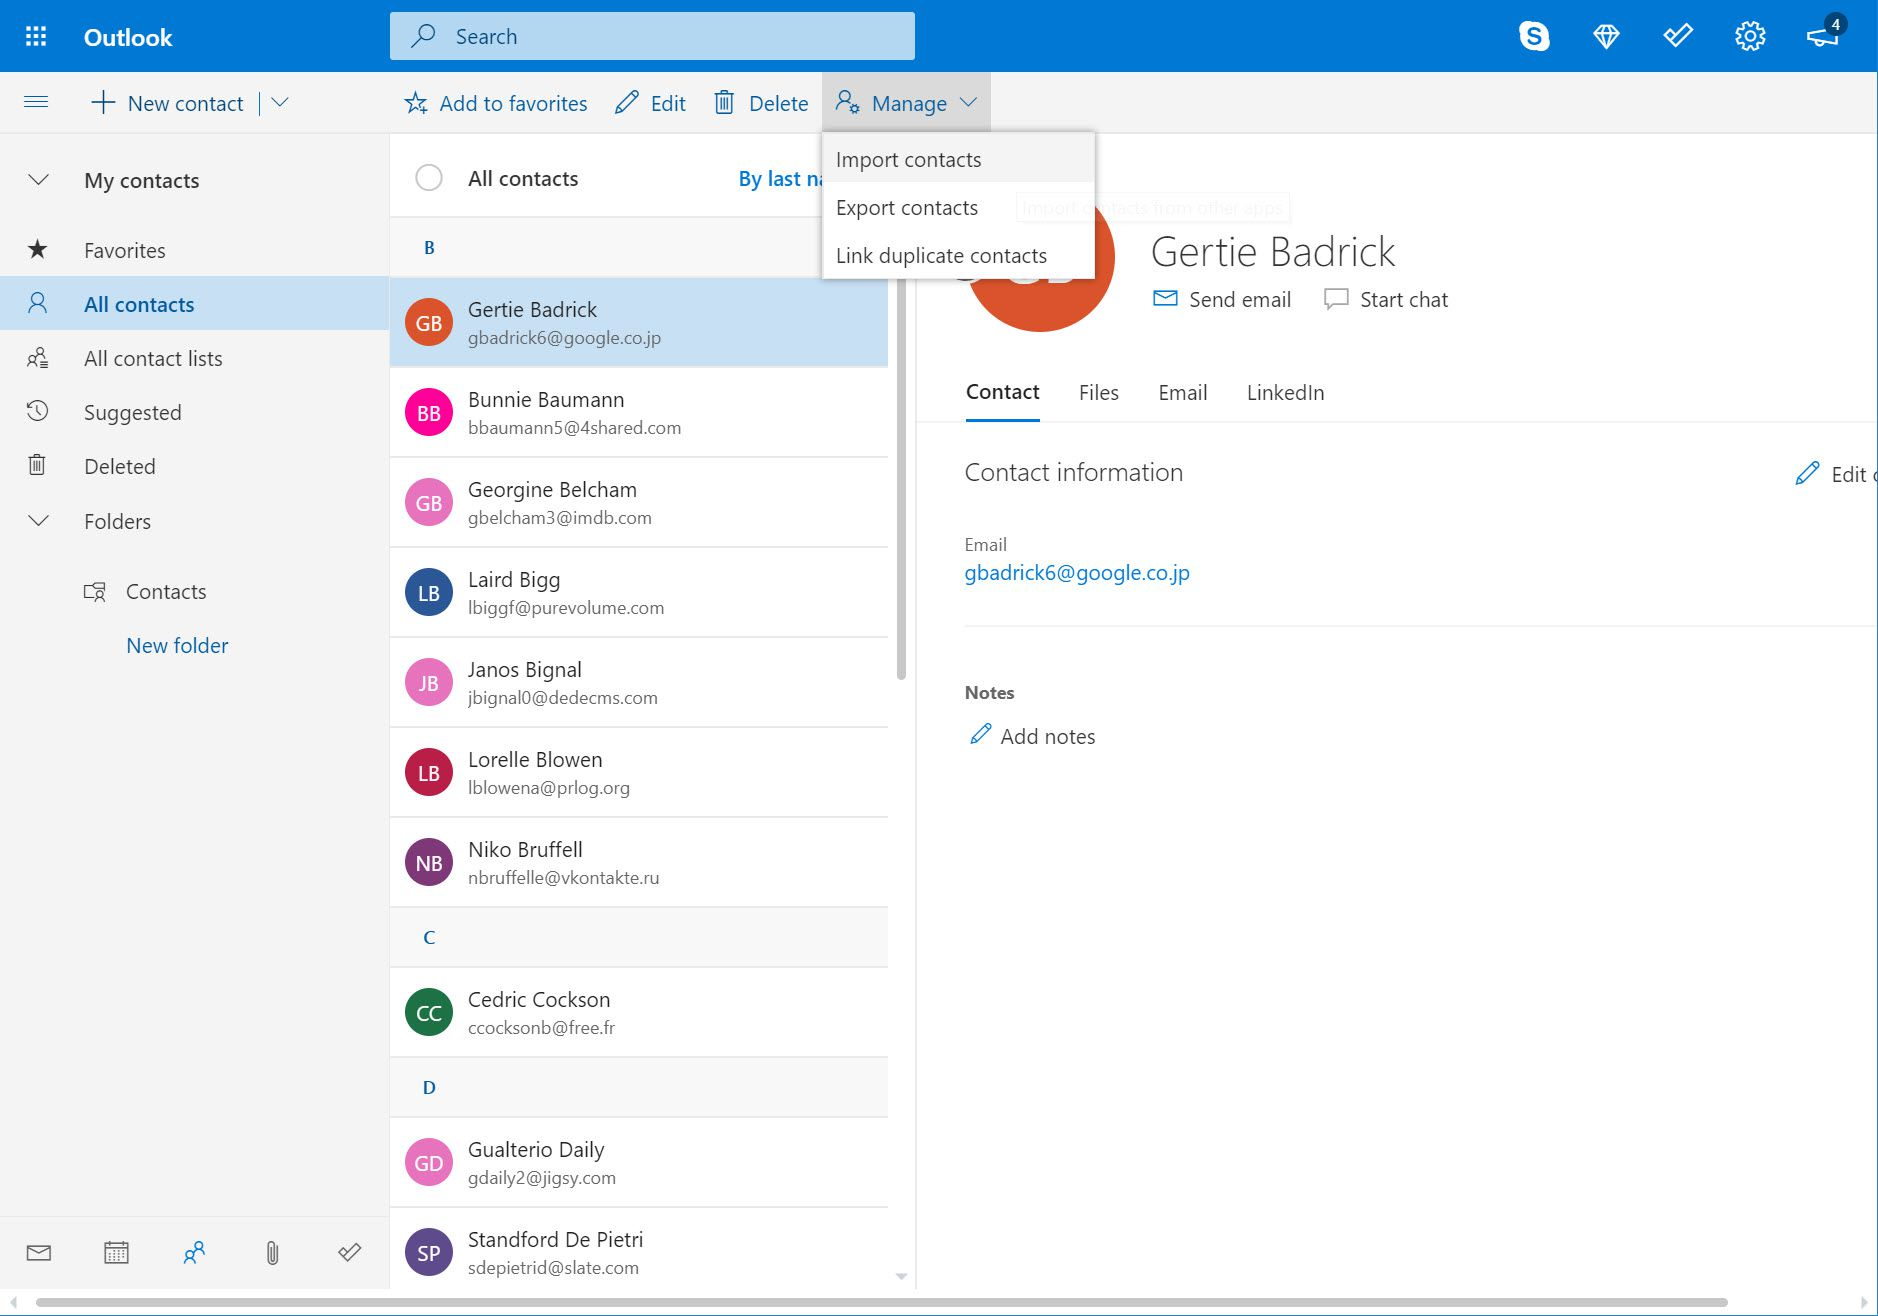 Manage menu and Import contacts selection in Outlook.com